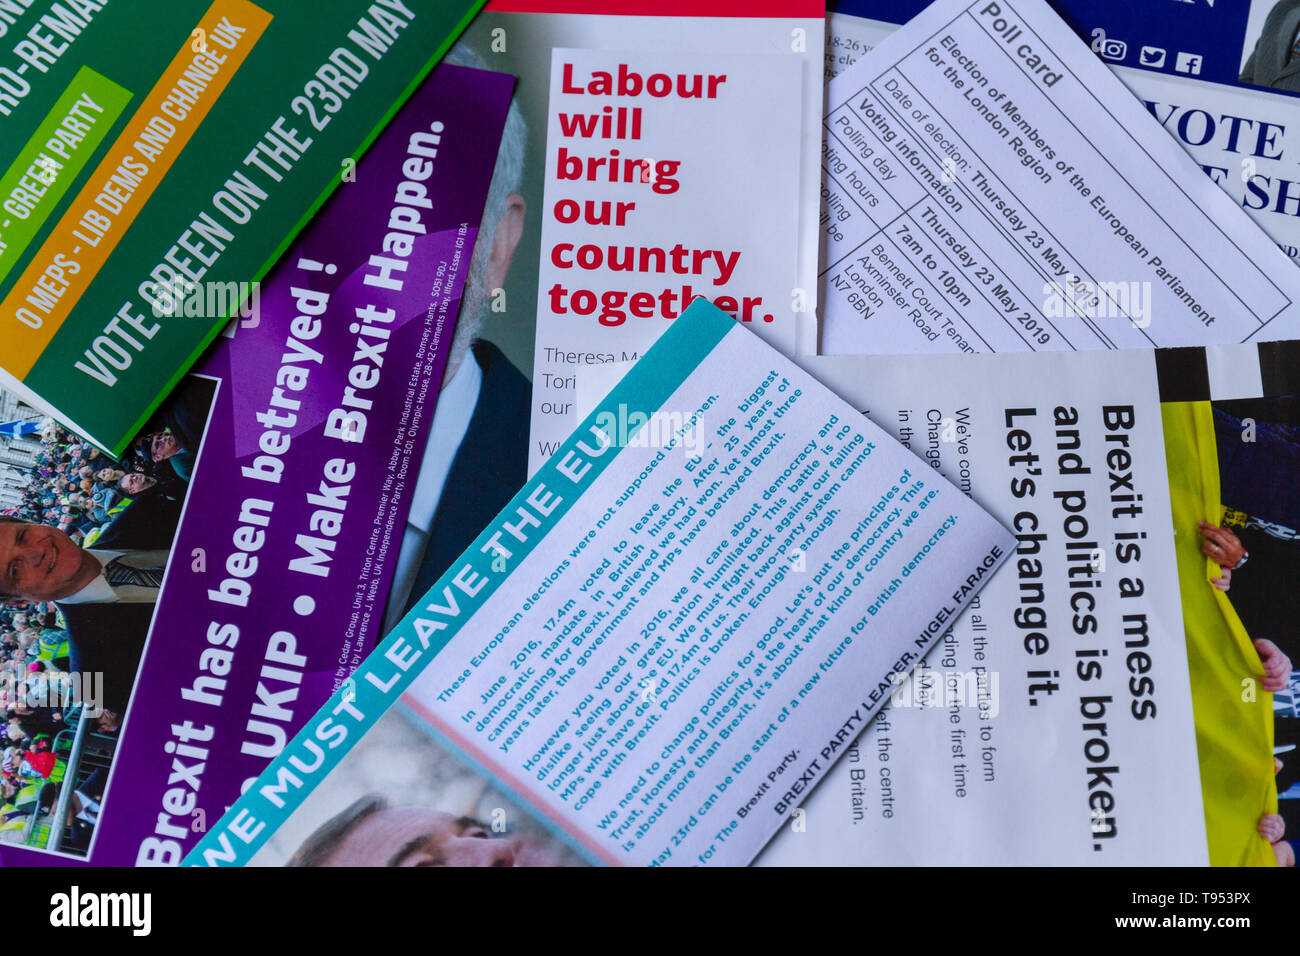 Overhead view of poll card & election material for European Parliament Elections 2019 in UK, showing different messages from the parties, landscape. - Stock Image